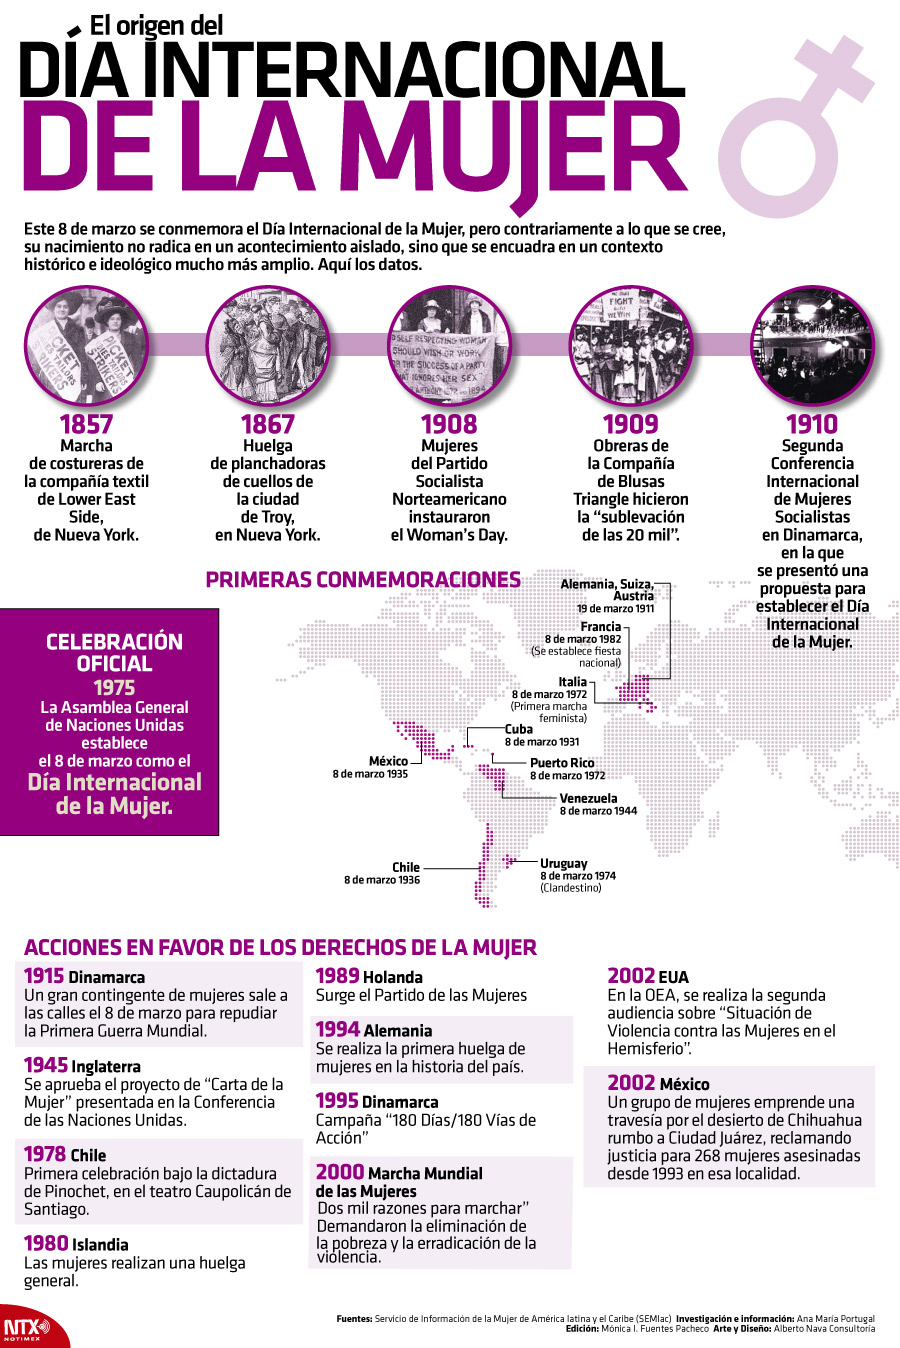 What is the origin of international women's day